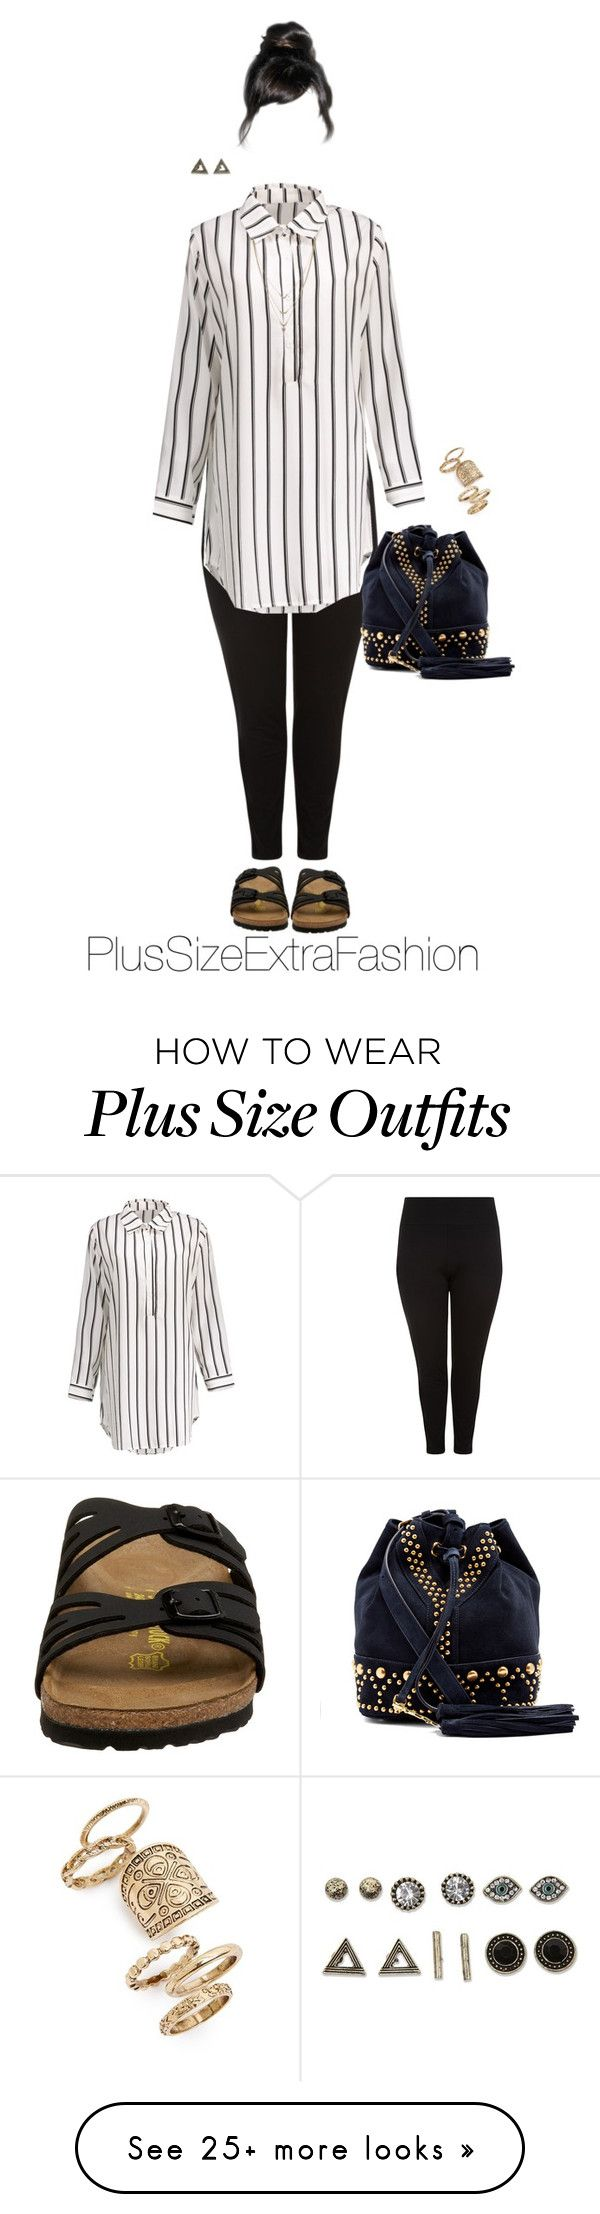 """Dressed Up Hipster Art Teacher : Plus Size Outfit"" by plussizeextrafashion on Polyvore featuring New Look, Birkenstock, Yves Saint Laurent, With Love From CA, Topshop, Jessica Simpson, birkenstock, Leggings, plussize and teacher"